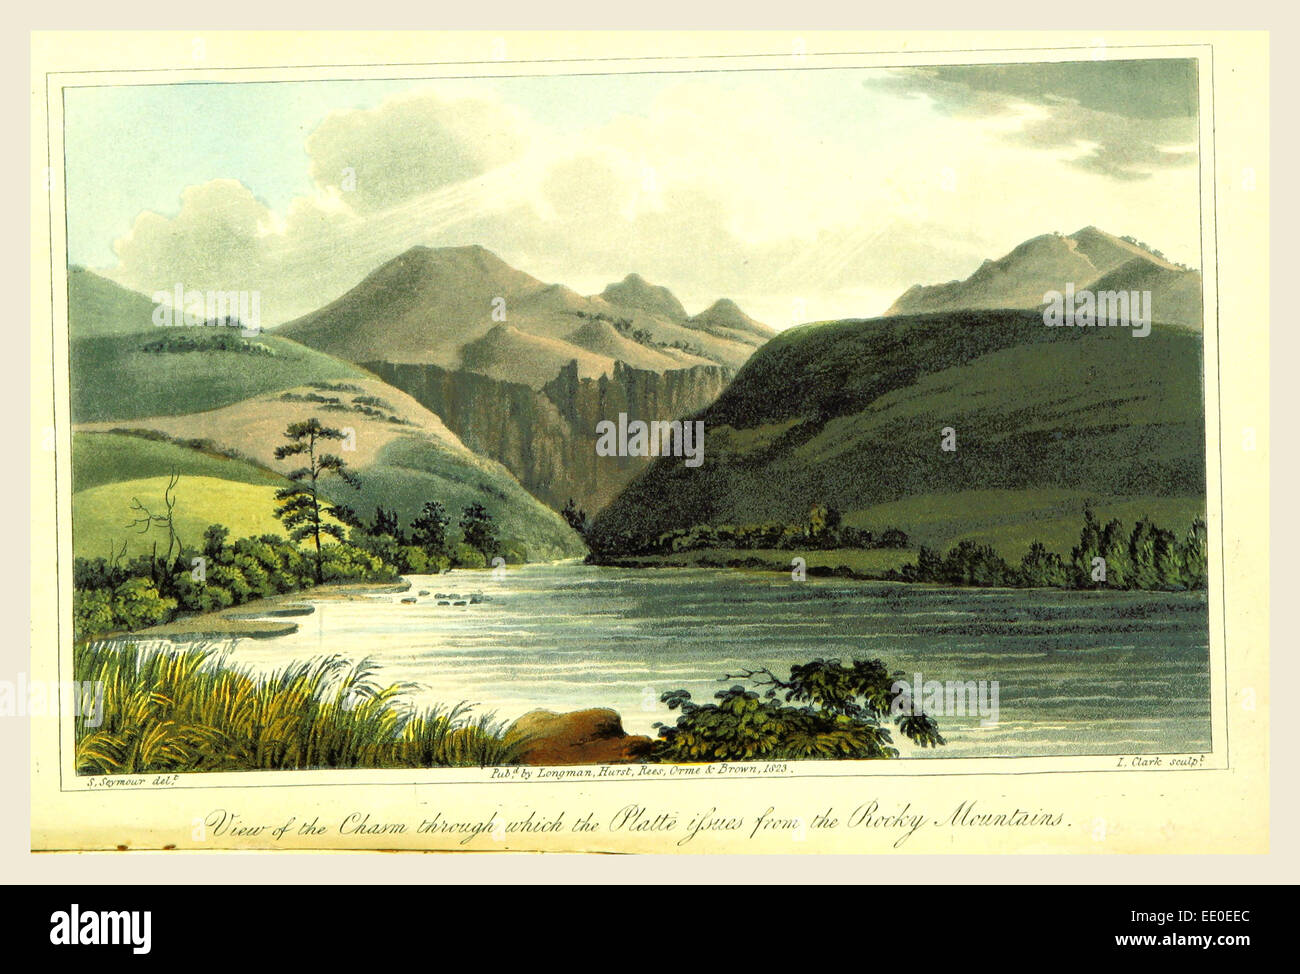 View of the Chasm through which the Platte issues from the Rocky Mountains, 1823 - Stock Image